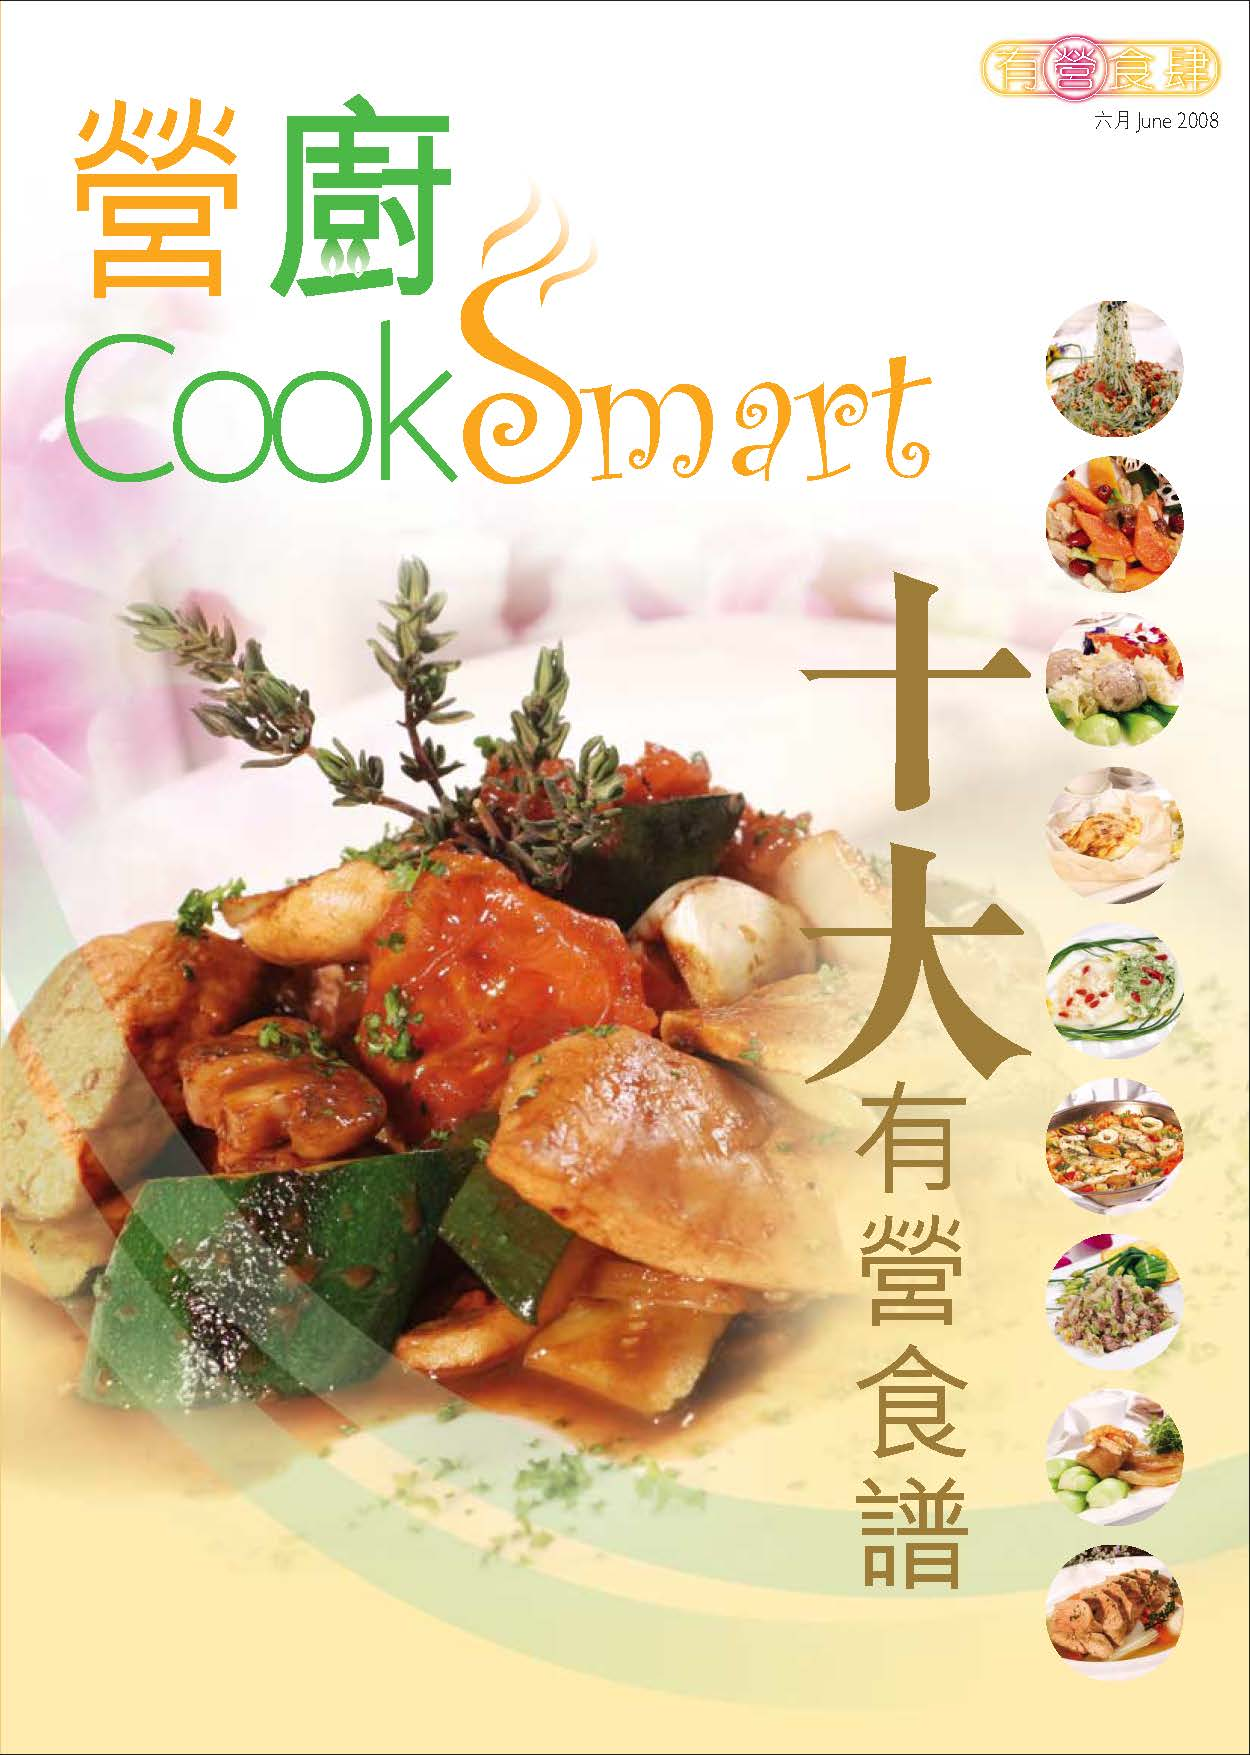 CookSmart (1st Issue) Page 1